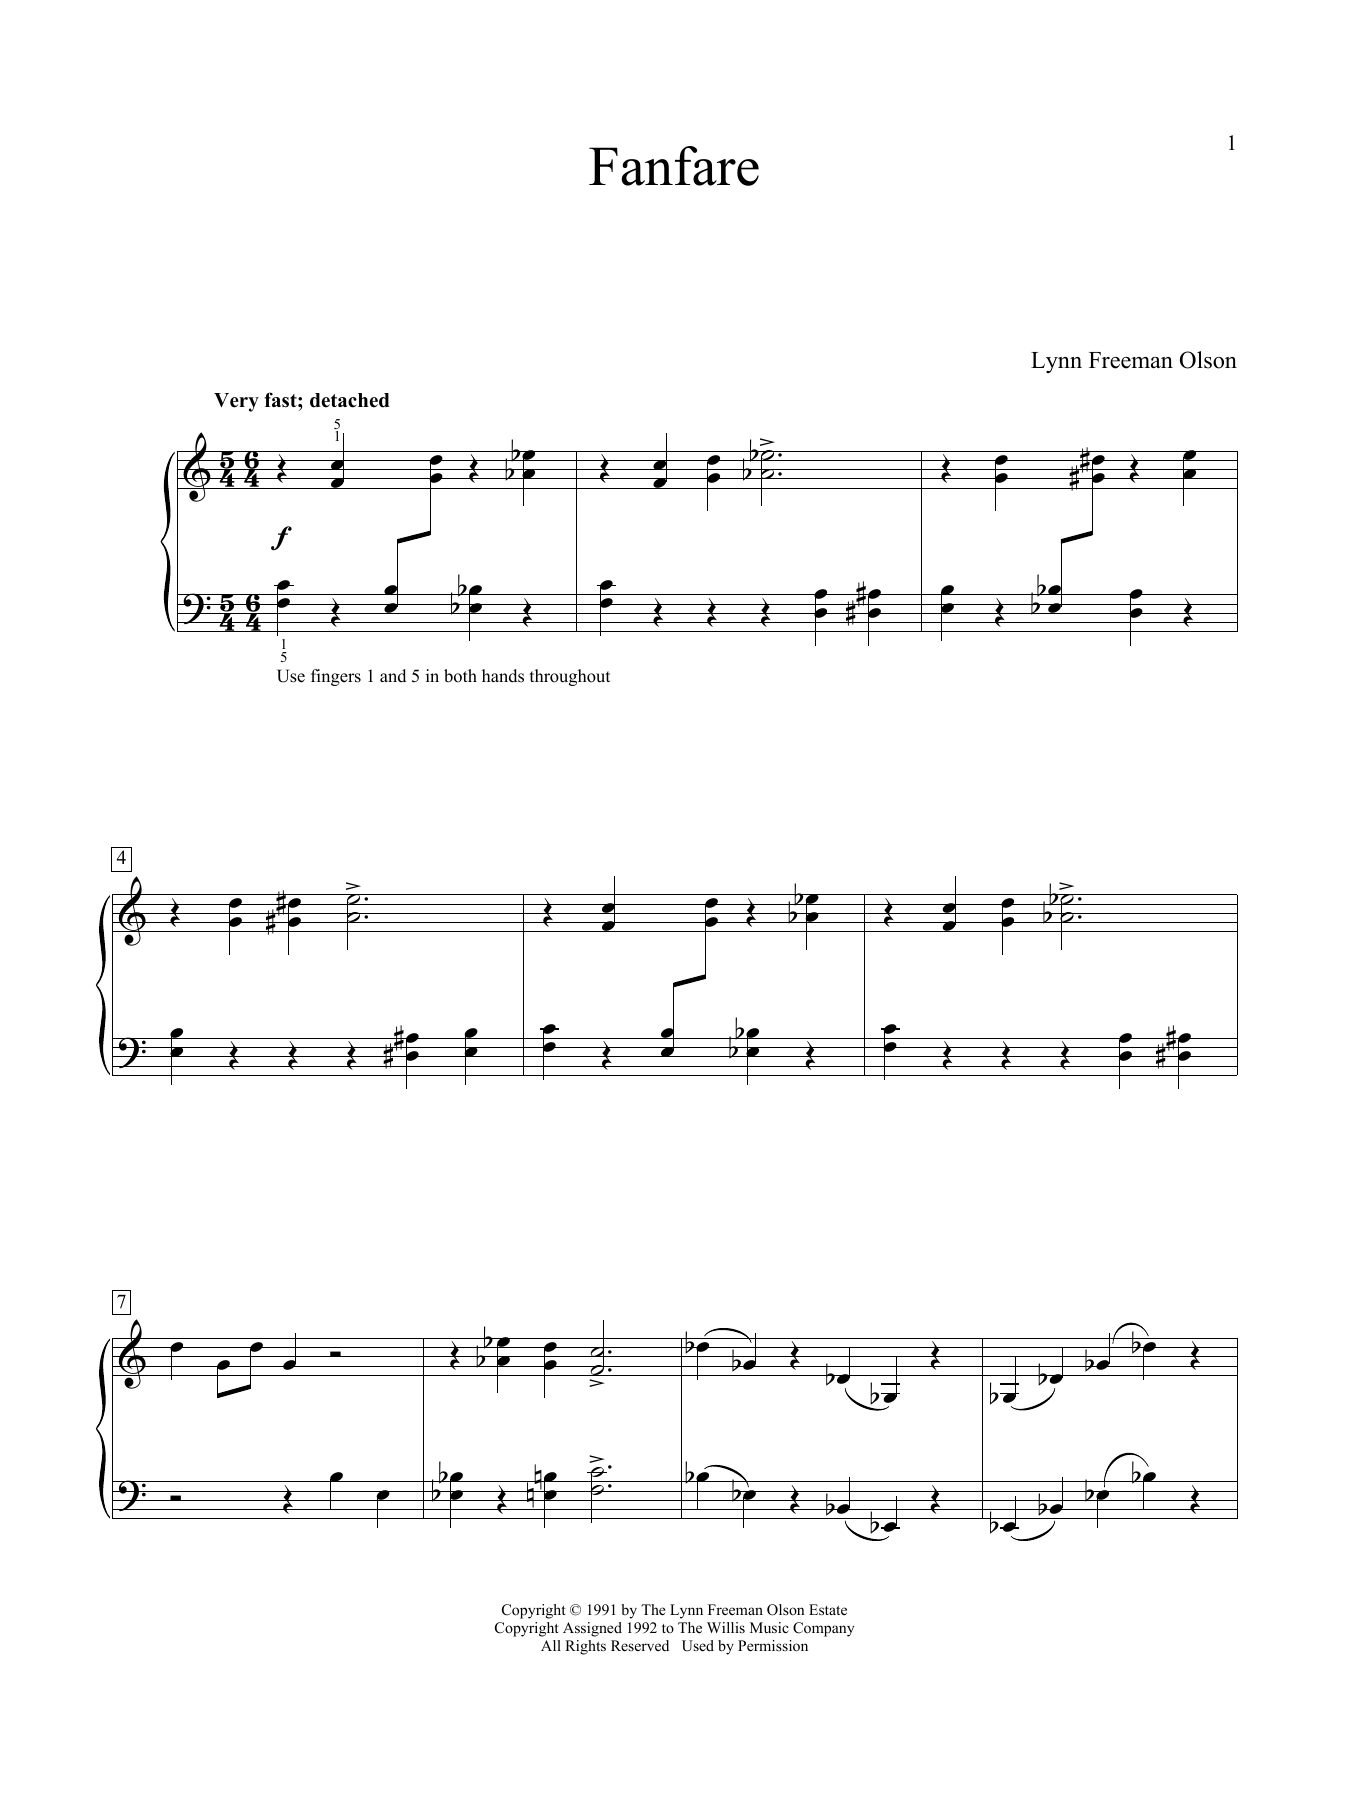 Lynn Freeman Olson Fanfare sheet music notes and chords. Download Printable PDF.